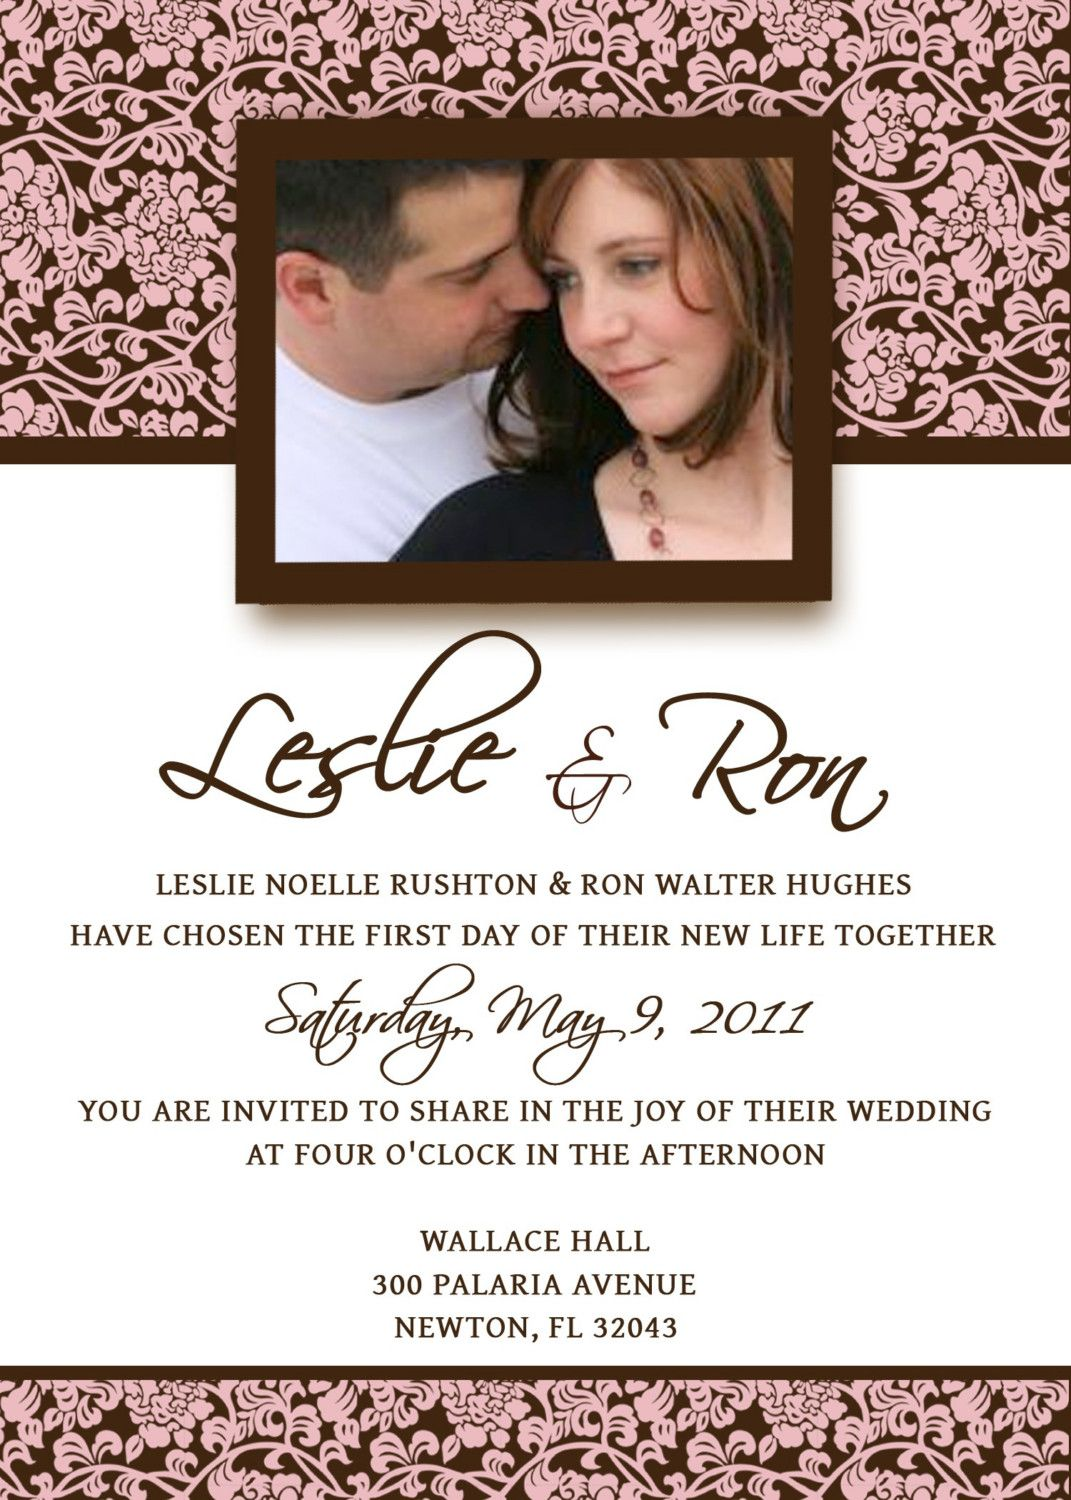 homemade wedding invitation template | invitation templates cool, Wedding invitations